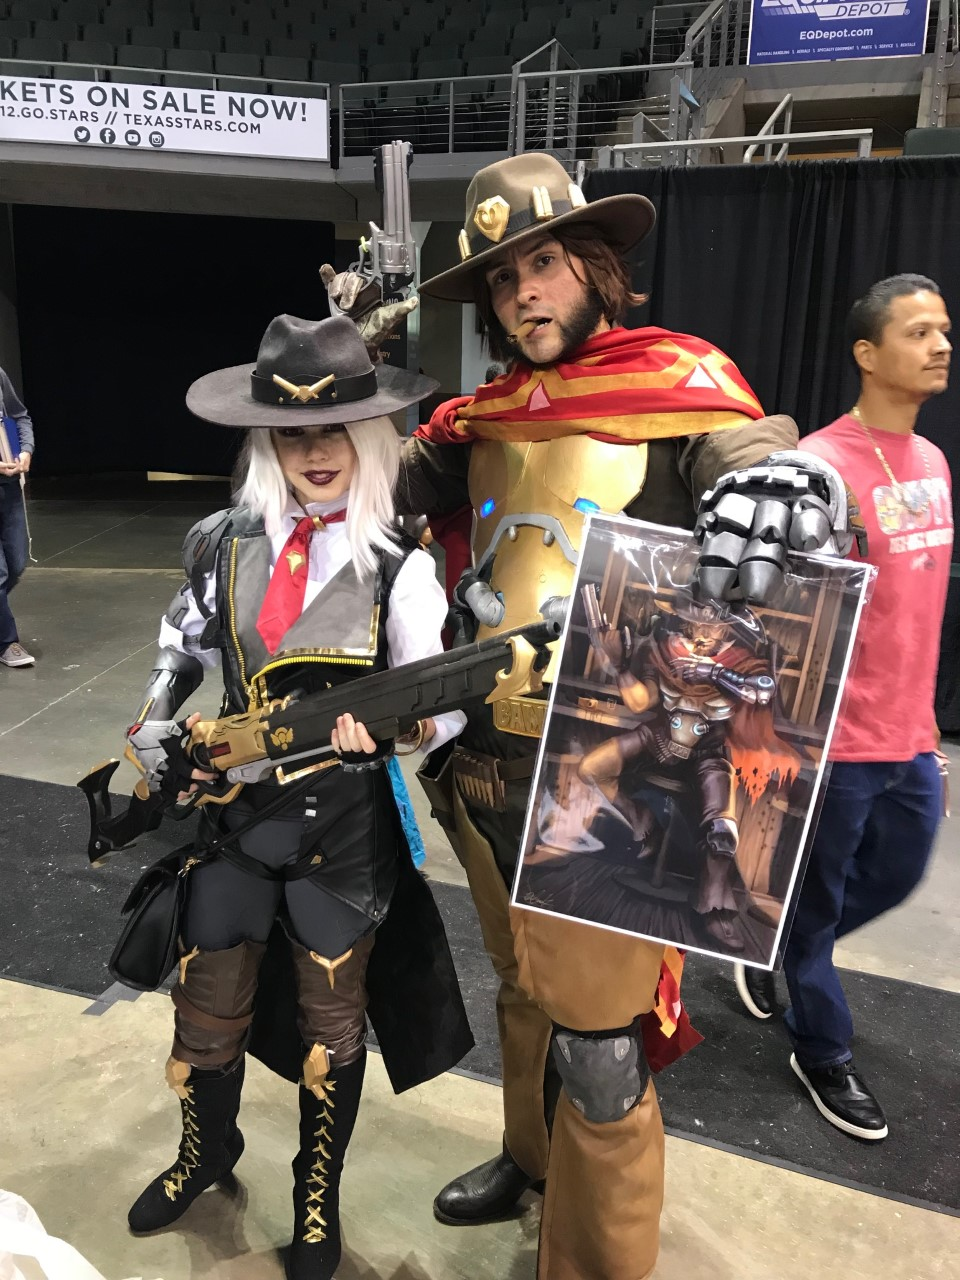 Ashe and McCree!!